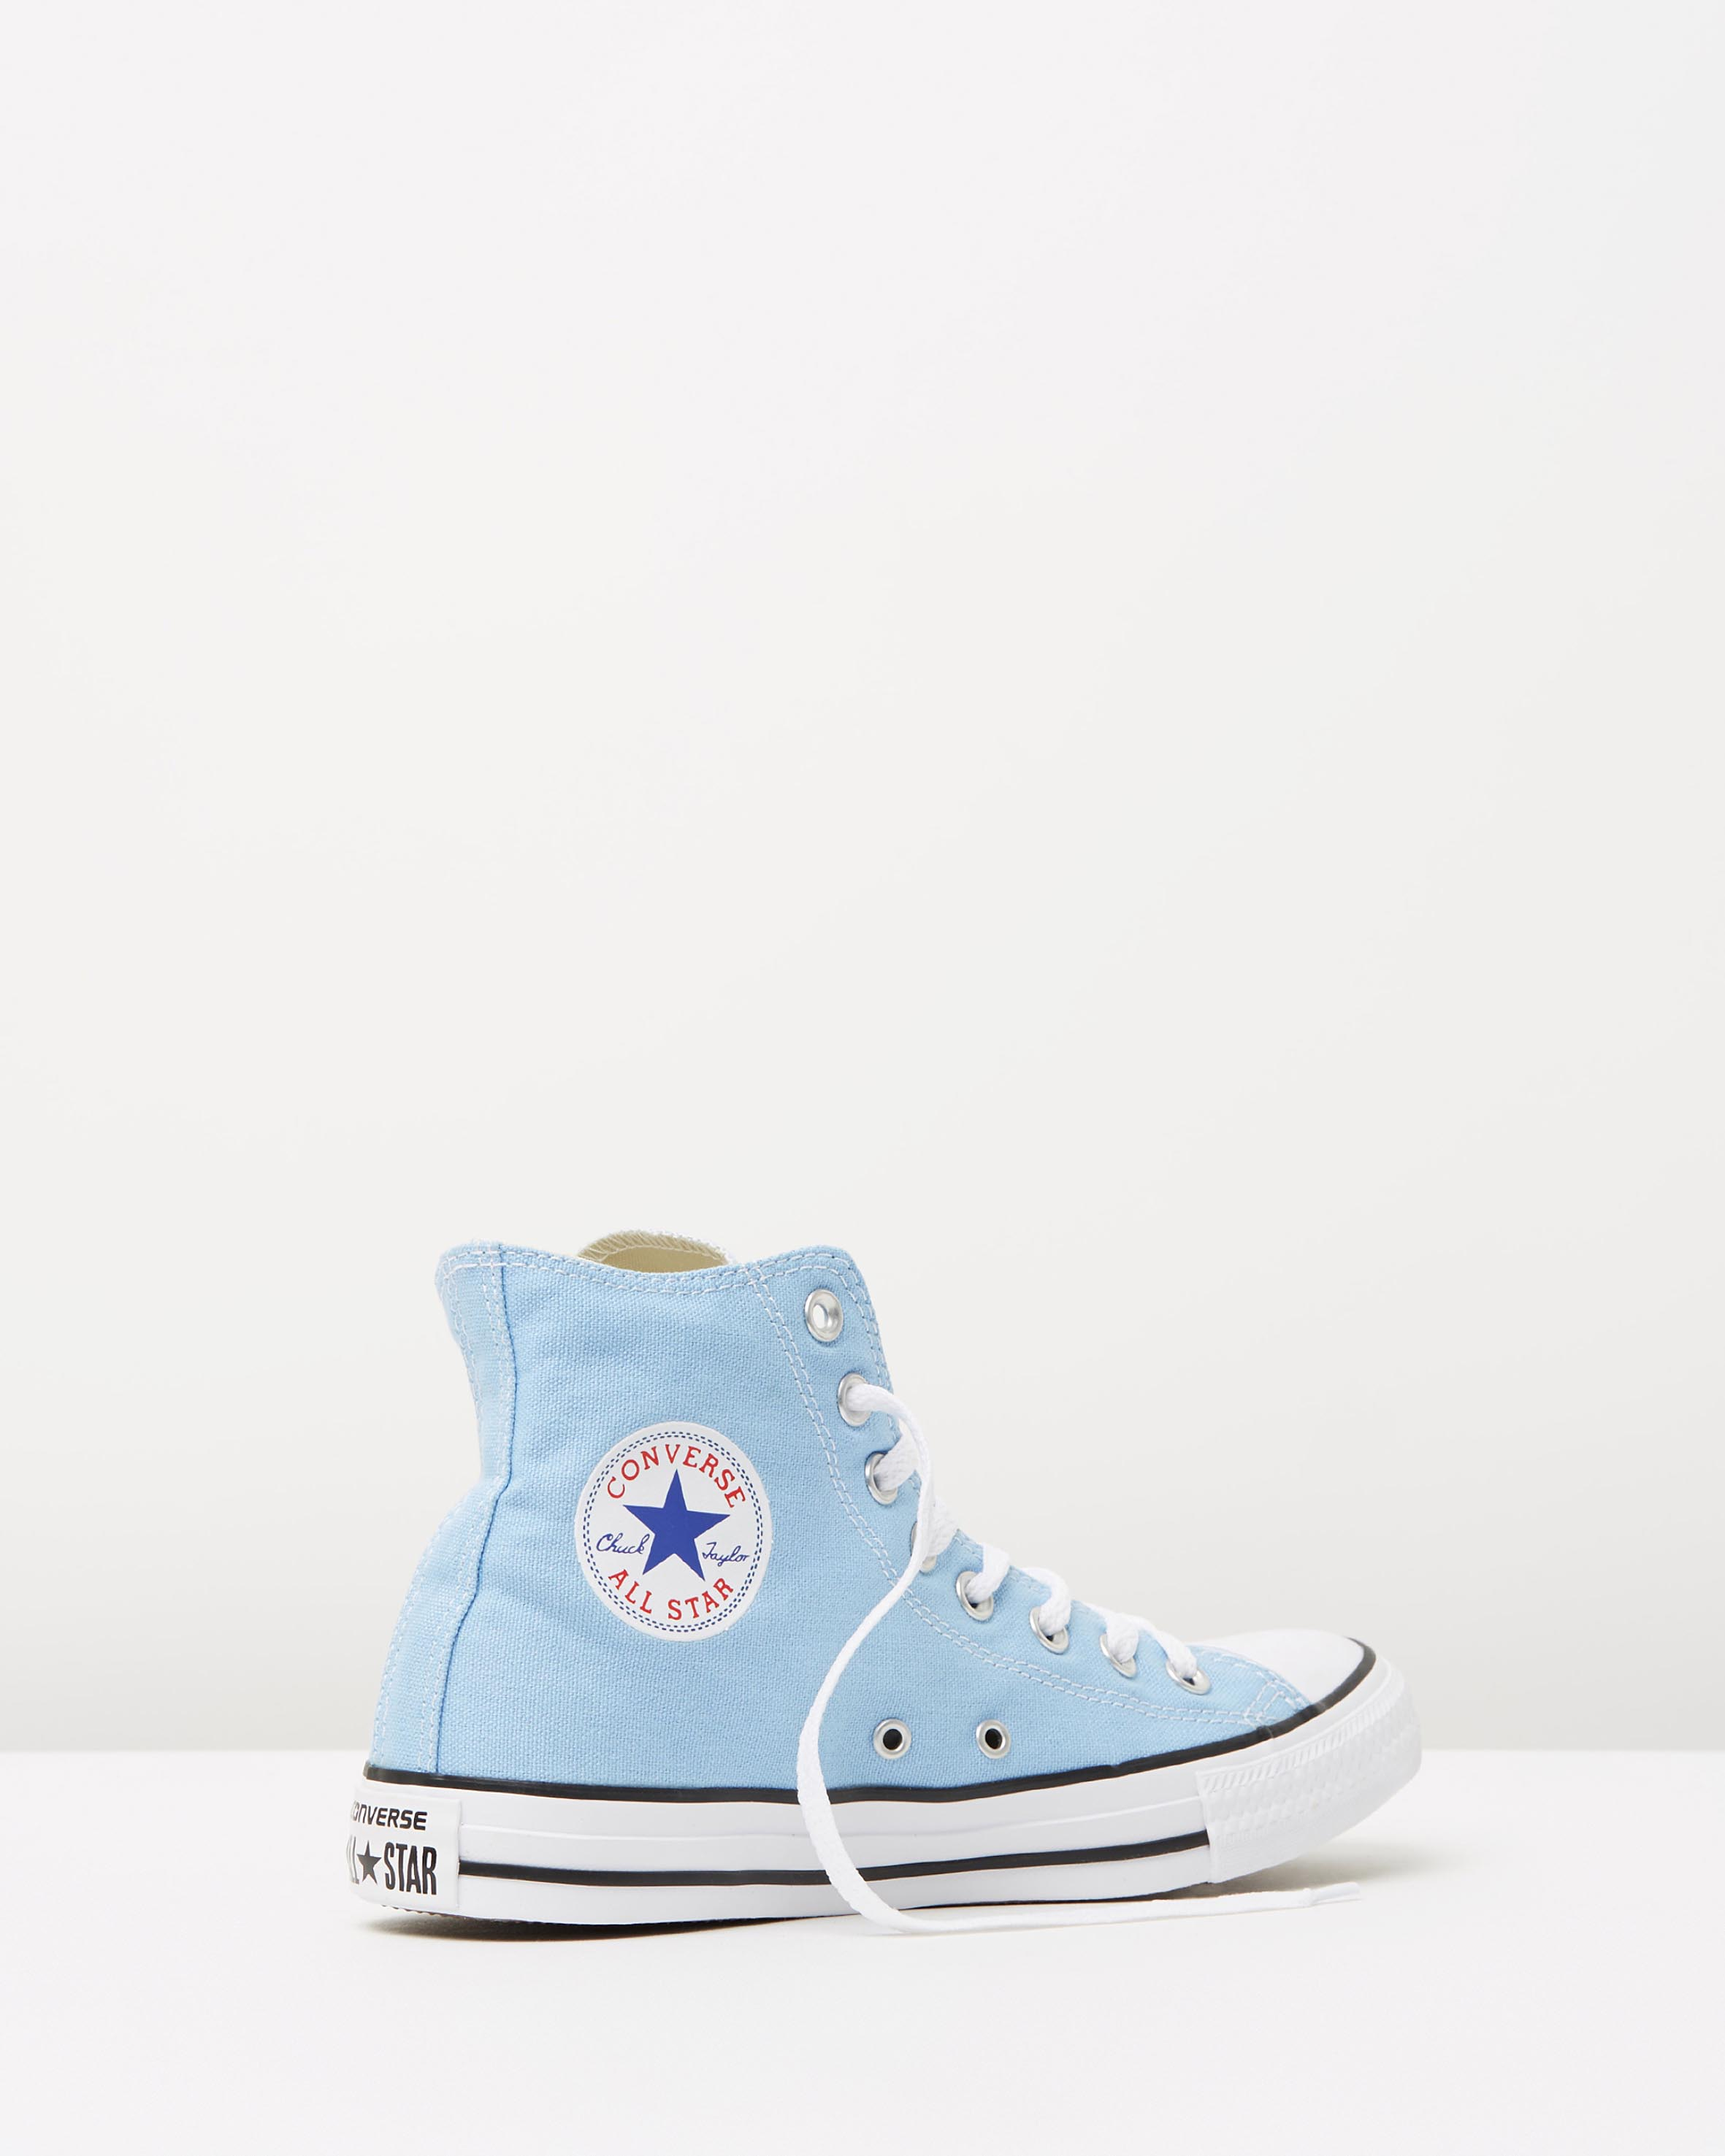 a46b1c2215c1 ... 1 Converse Chuck Taylor All Star Hi Womens Blue Sky 2 ...